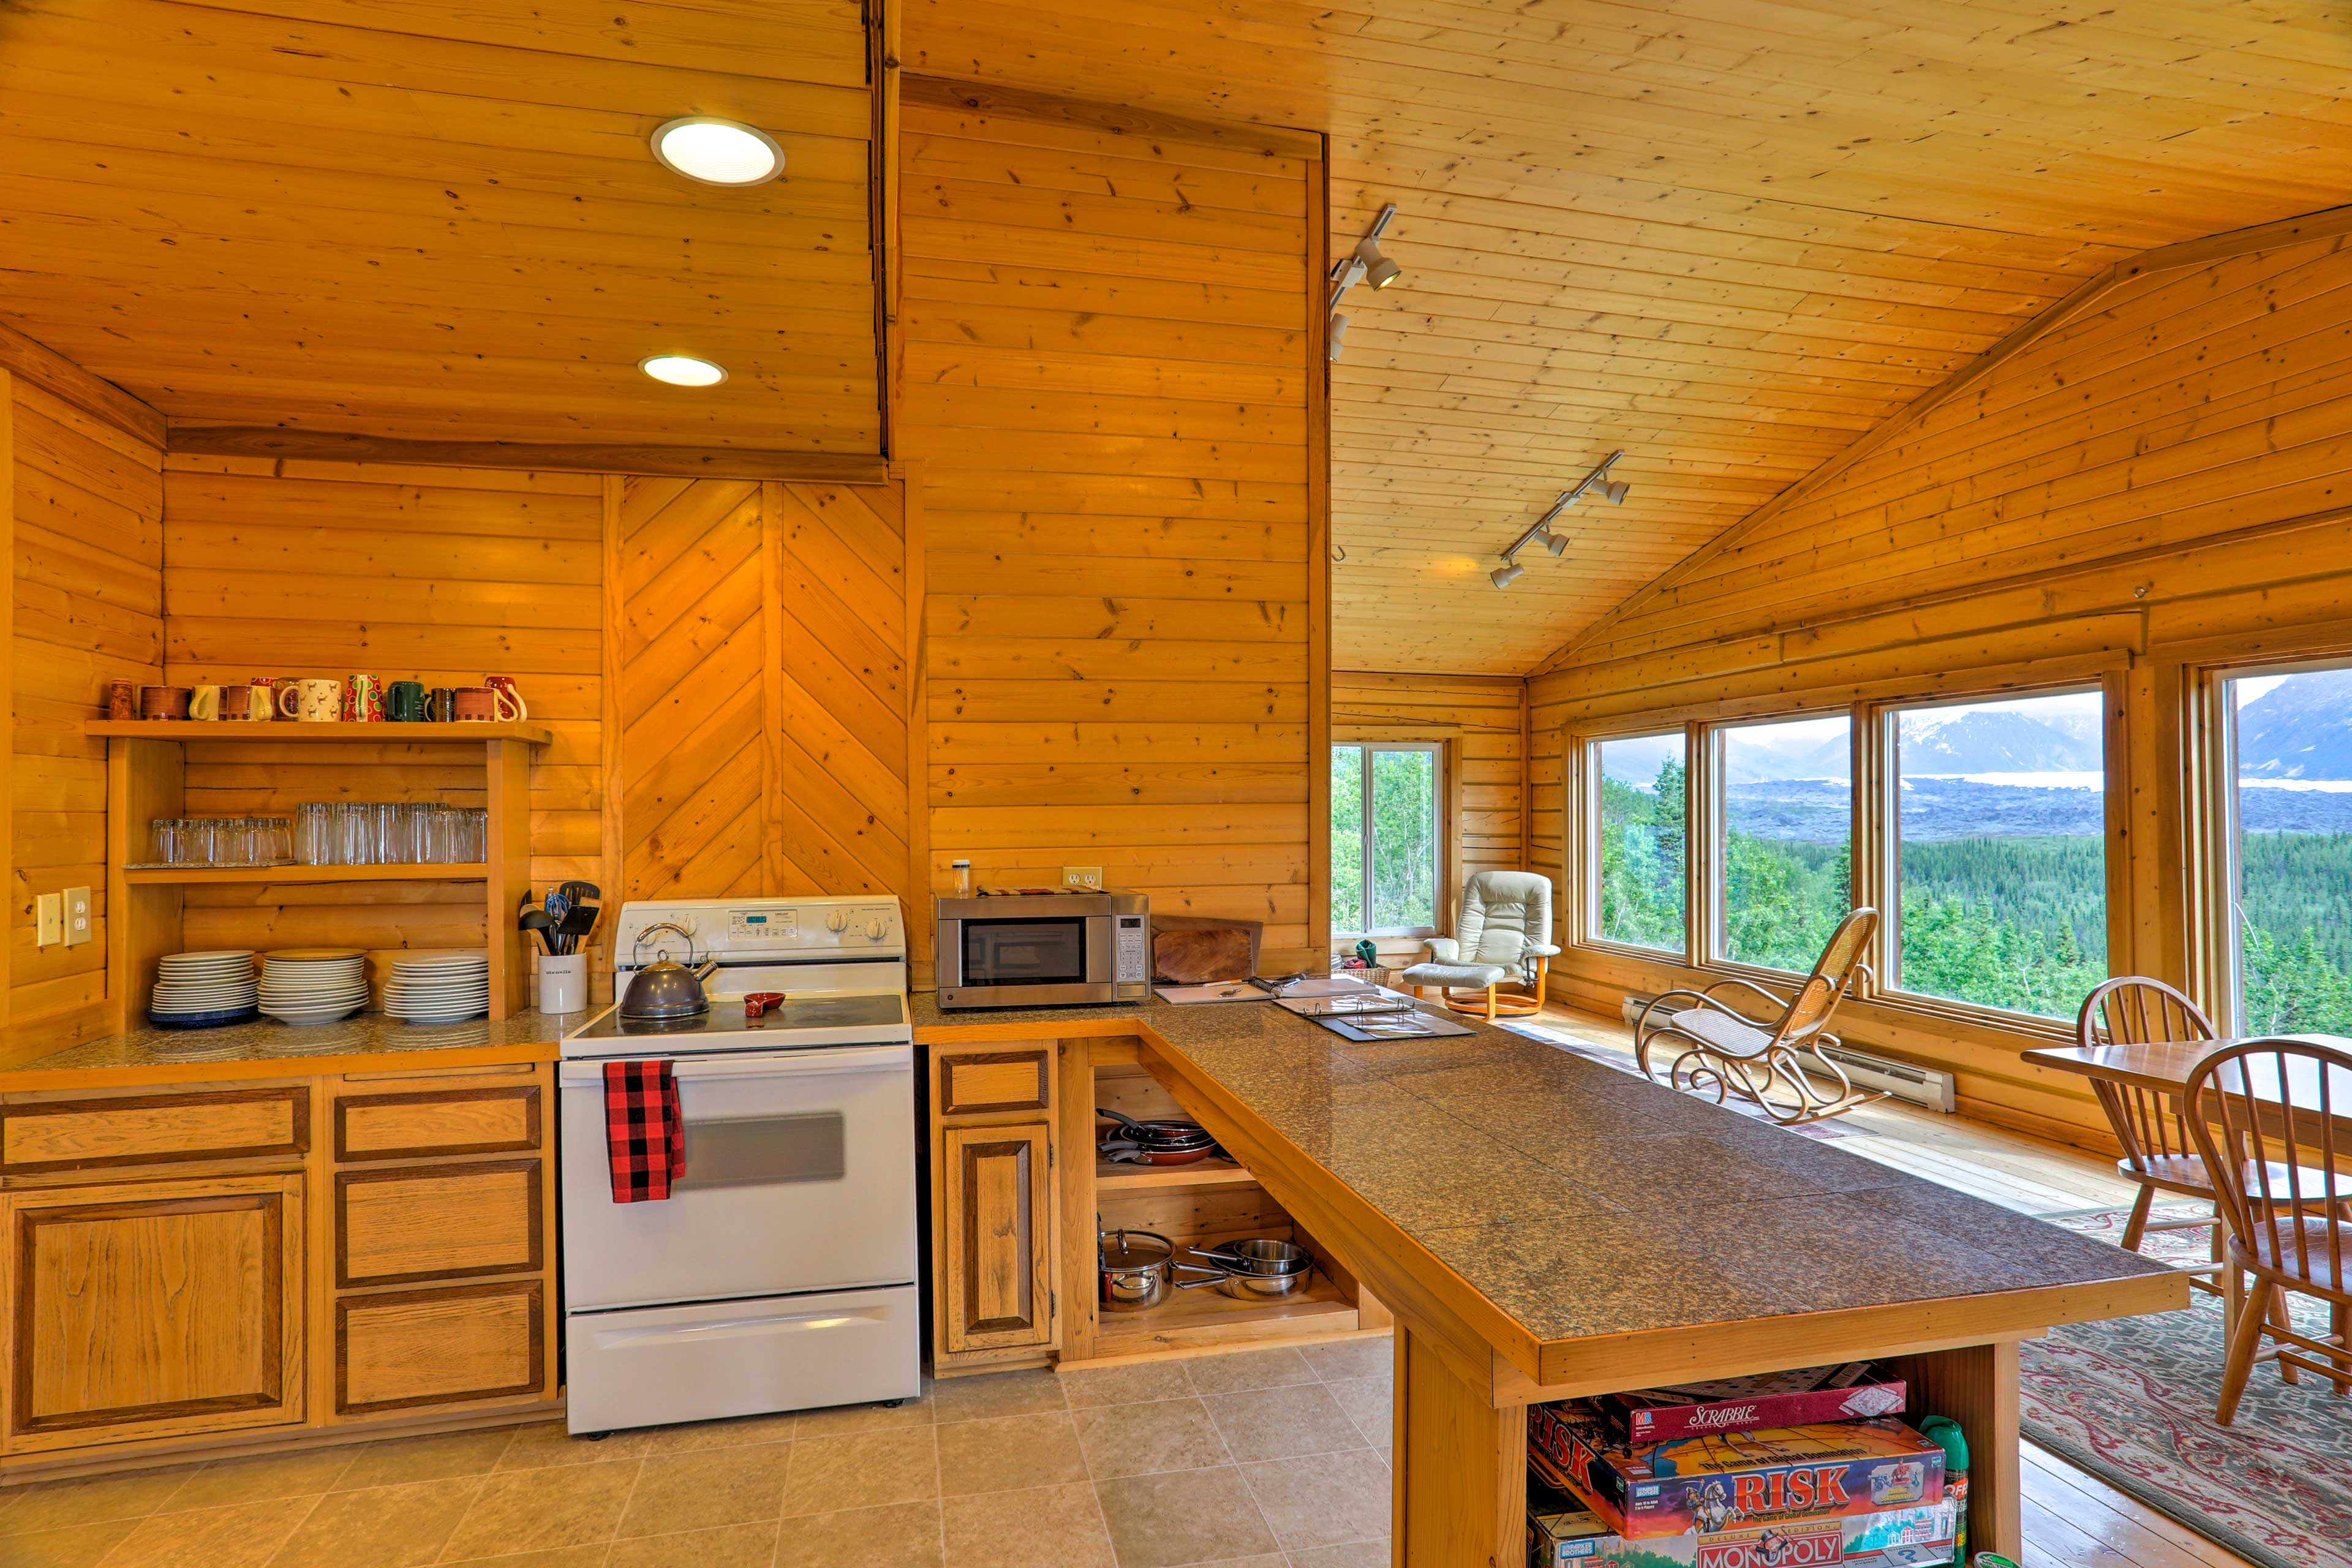 Whip up home-cooked meals in this open, fully equipped kitchen.